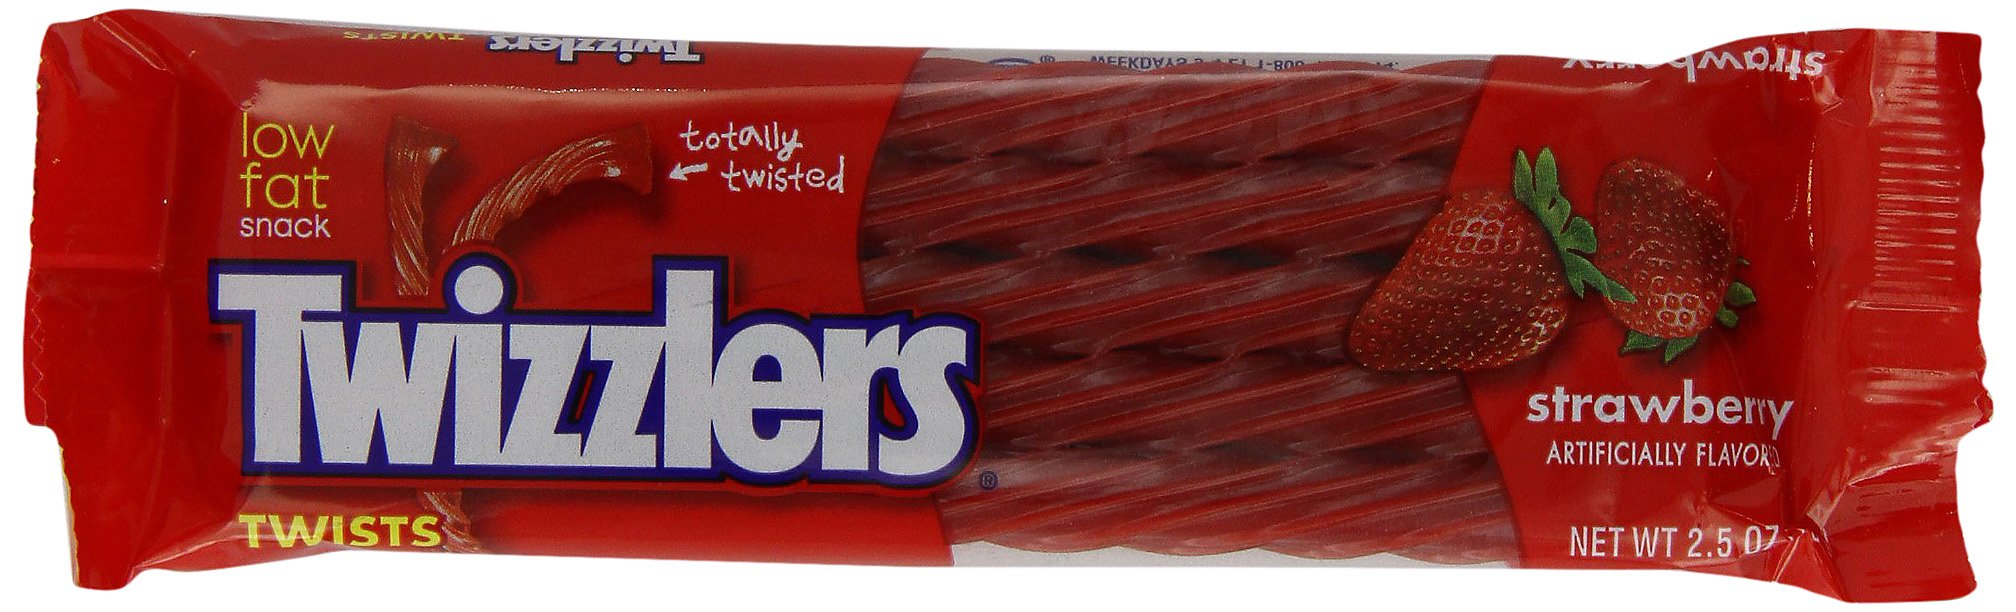 TWIZZLERS Twists, Strawberry Flavored Licorice Candy, 2.5 Ounce Packet (Pack of 36) by Twizzlers